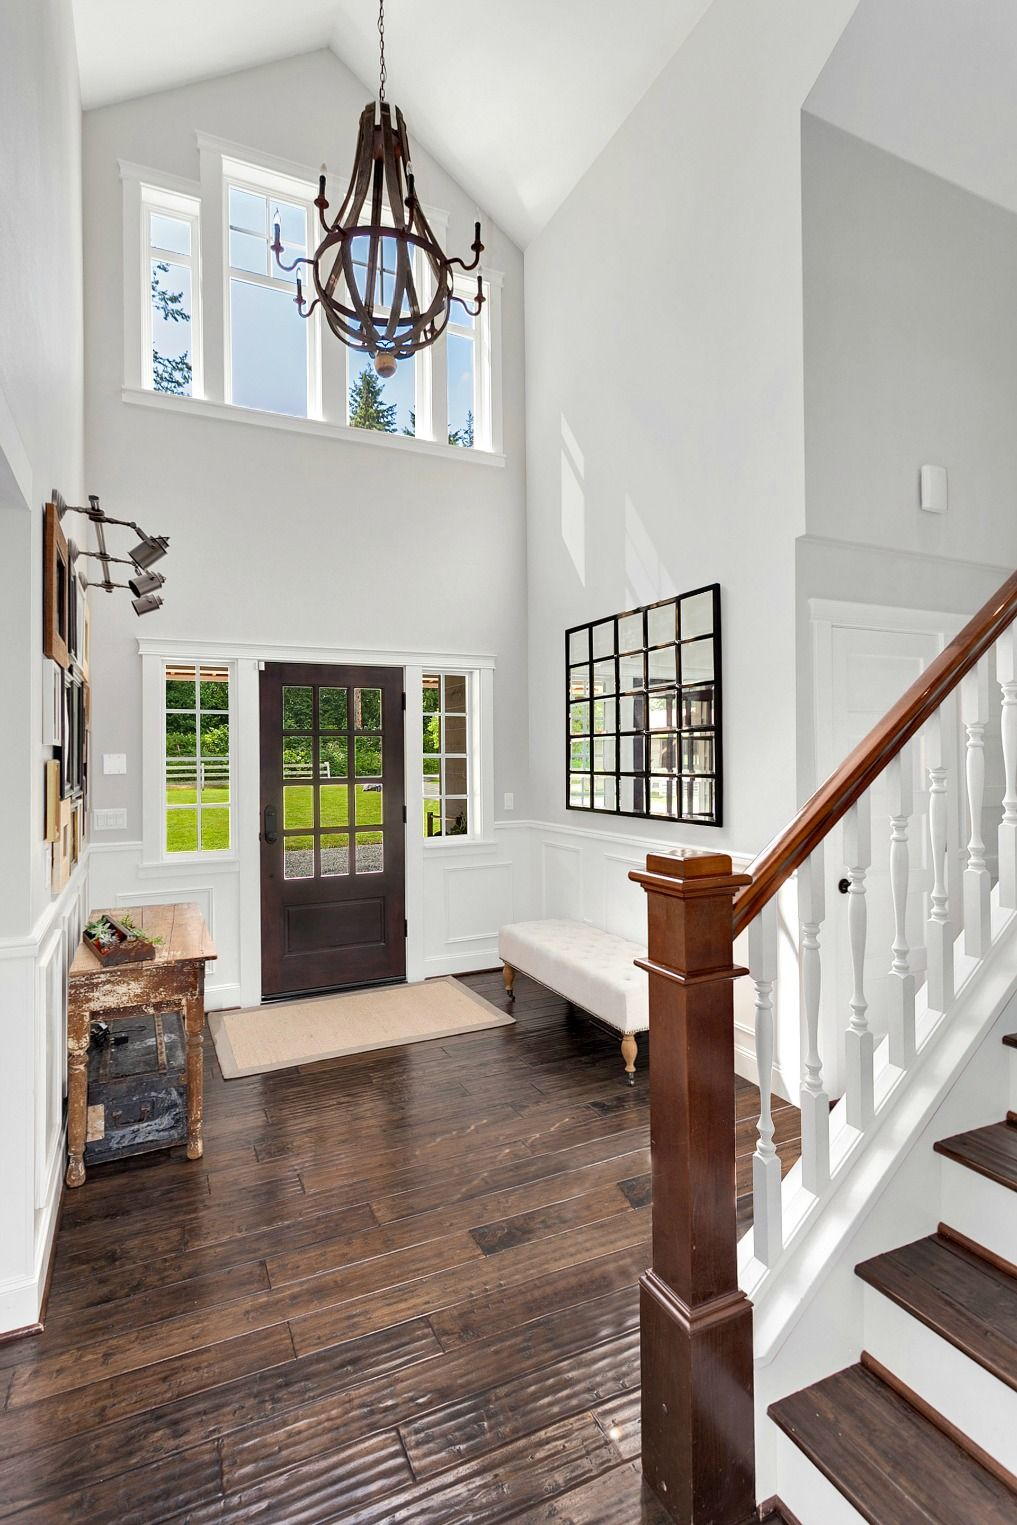 Modern Chandelier For Two Story Foyer : Dramatic two story foyer in this modern farmhouse love